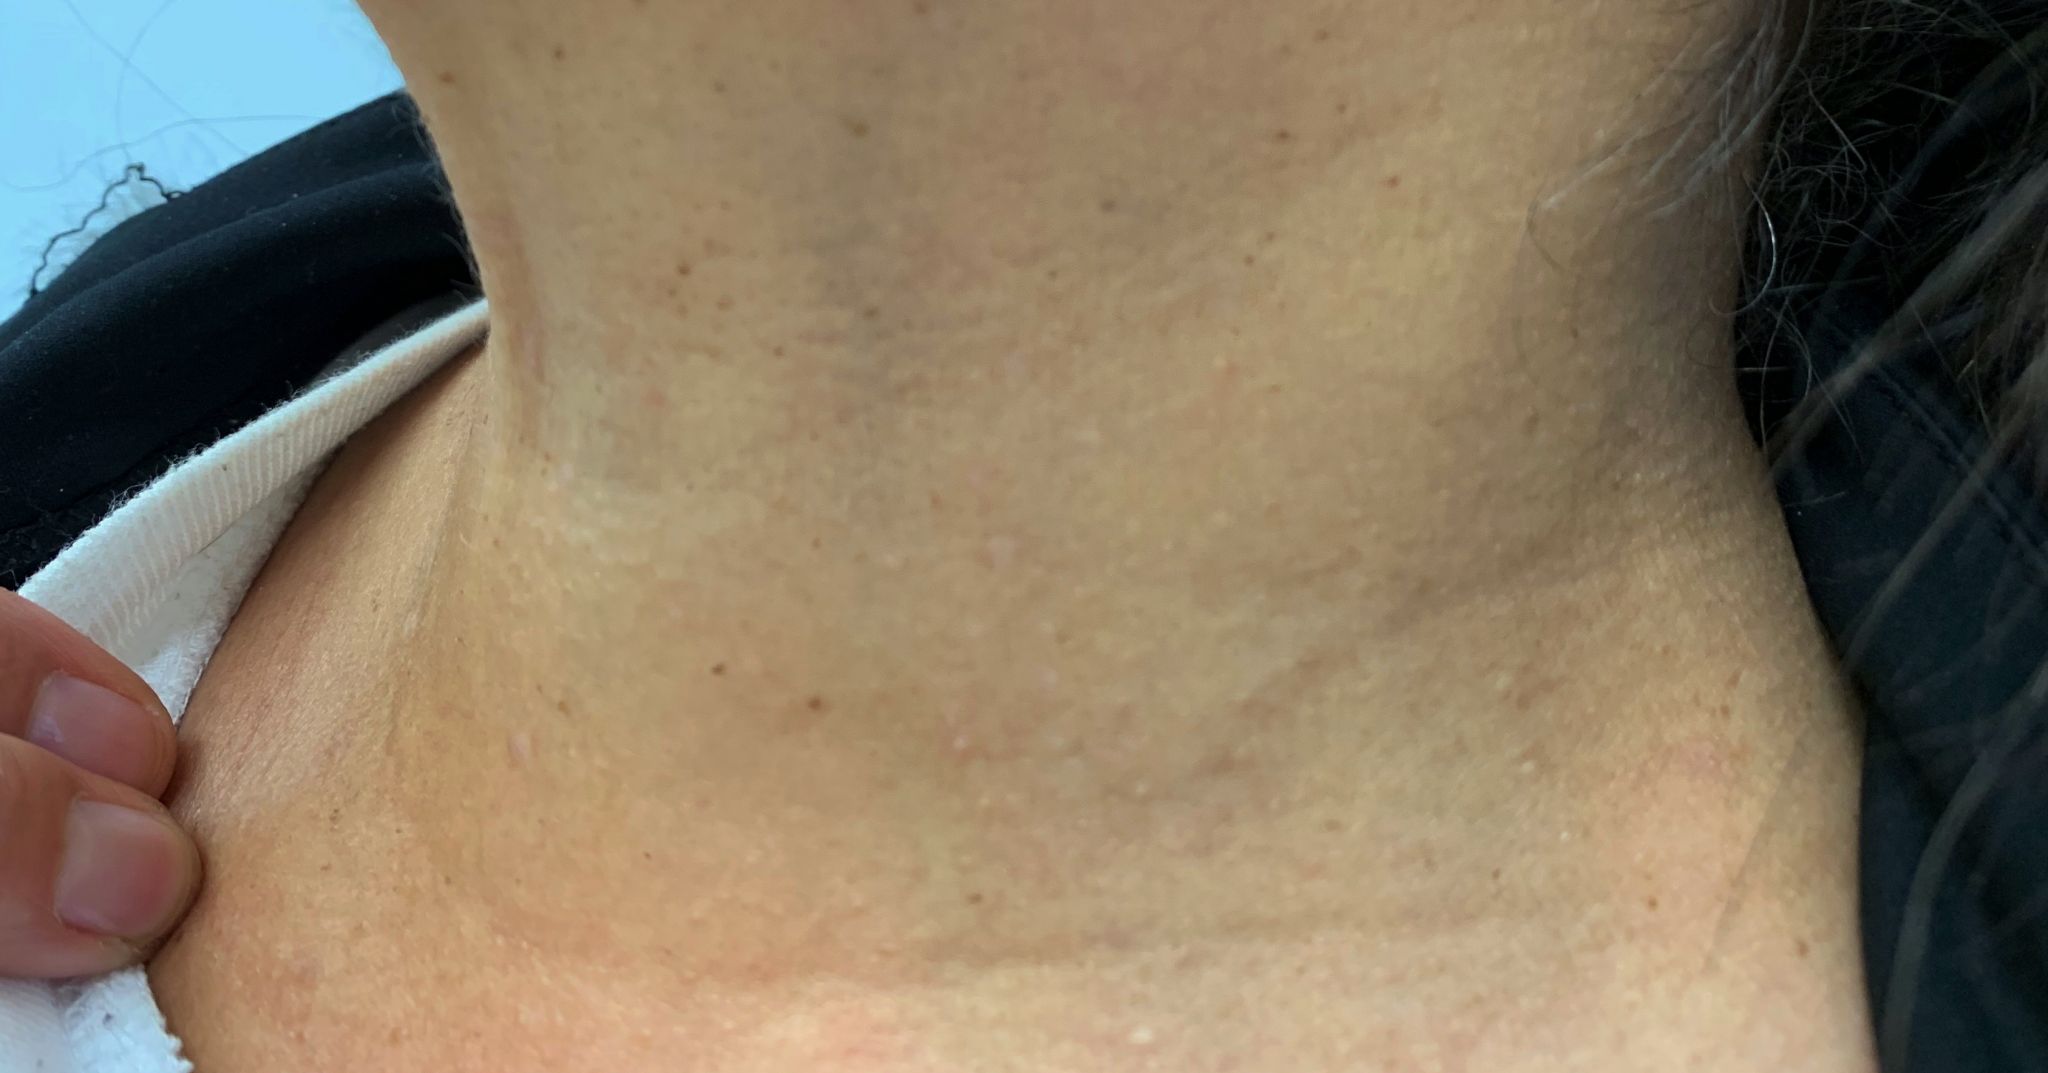 Skin Tag Removal Manchester Cheshire Lancashire Dr Nicole Dermatology